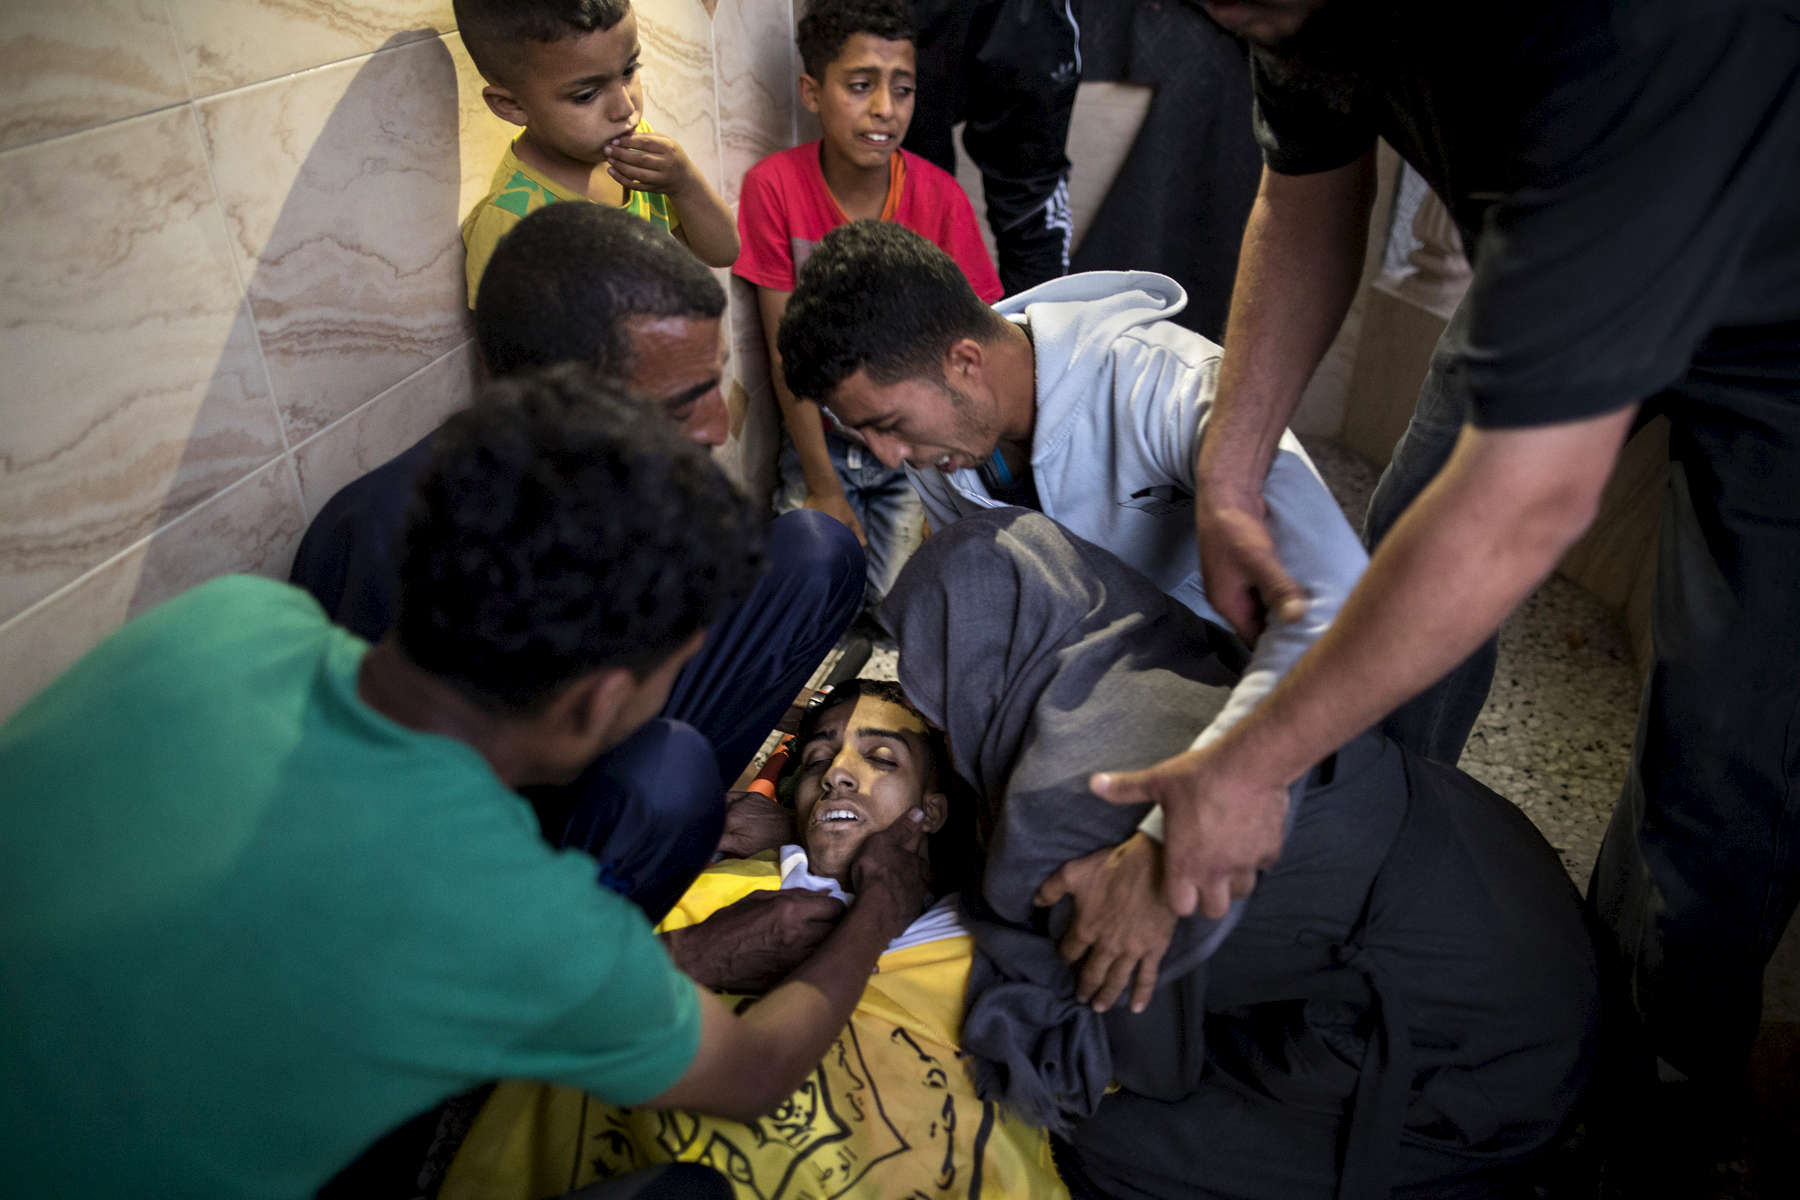 GAZA CITY, GAZA STRIP- MAY 14,2018 A family grieves as another funeral takes place on May 14,2018 in Gaza city, Gaza strip. According to the International Committee of the Red Cross (ICRC), 13,000 Palestinians were wounded (as of June 19, 2018), the majority severely, with some 1,400 struck by three to five bullets. No Israelis were physically harmed during this time period, Israel's use of deadly force was condemned during the UN general assembly on June 13 th along with other human rights organizations.The world's largest open air prison along the Israel-Gaza border. Everyone is well aware that Gaza's two million inhabitants are trapped in a cycle of violence and poverty, created by policies and political decisions on both sides. The problems and complications affecting Gaza today are overwhelming. The world, seemingly accustomed to the suffering of the Gazan people turns a blind eye. (Photo by Paula Bronstein )